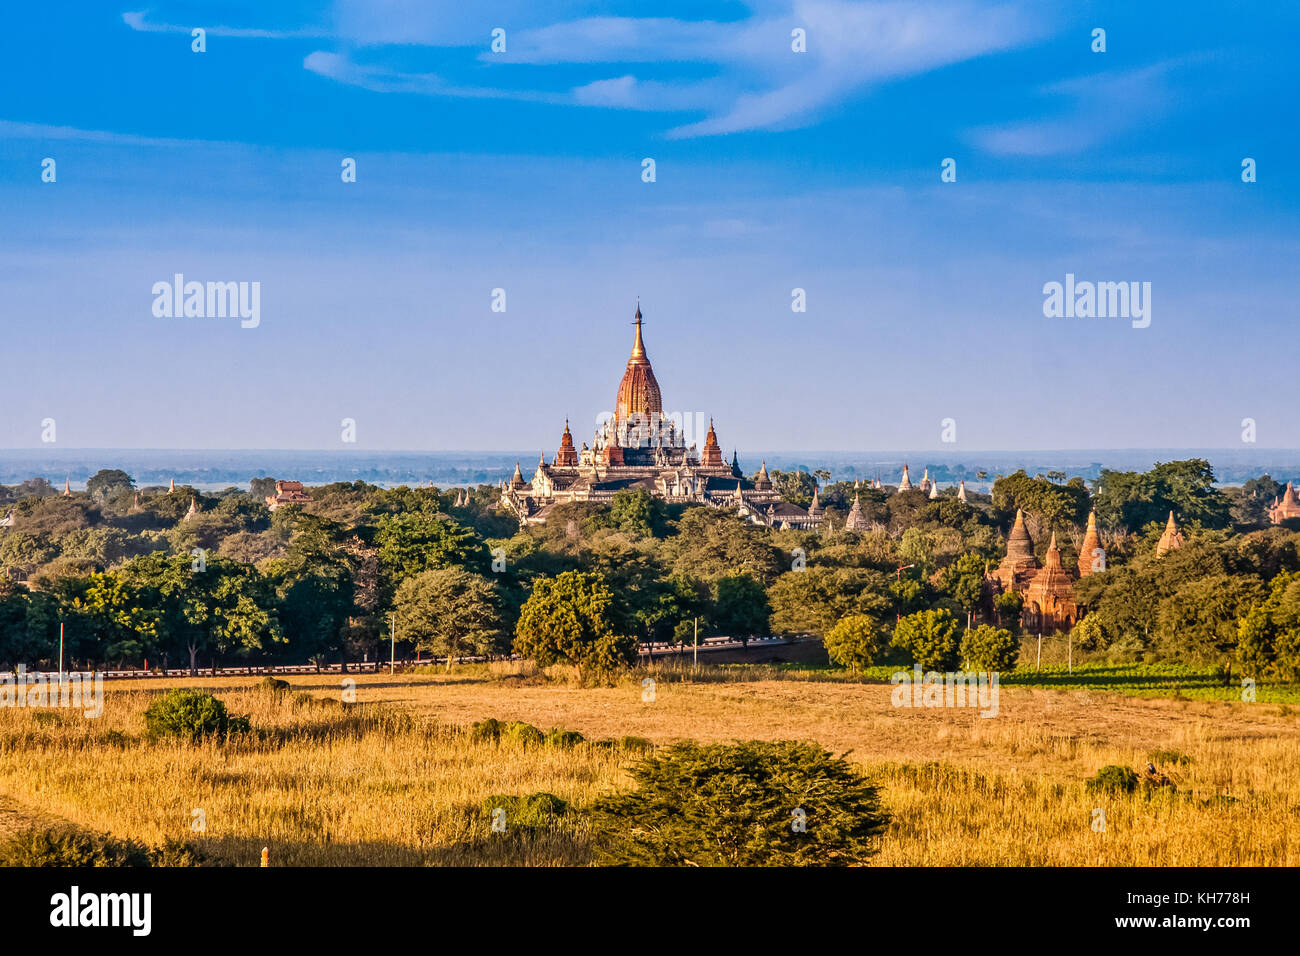 A scenic aerial view of Old Bagan with the Ananda Temple, Myanmar - Stock Image